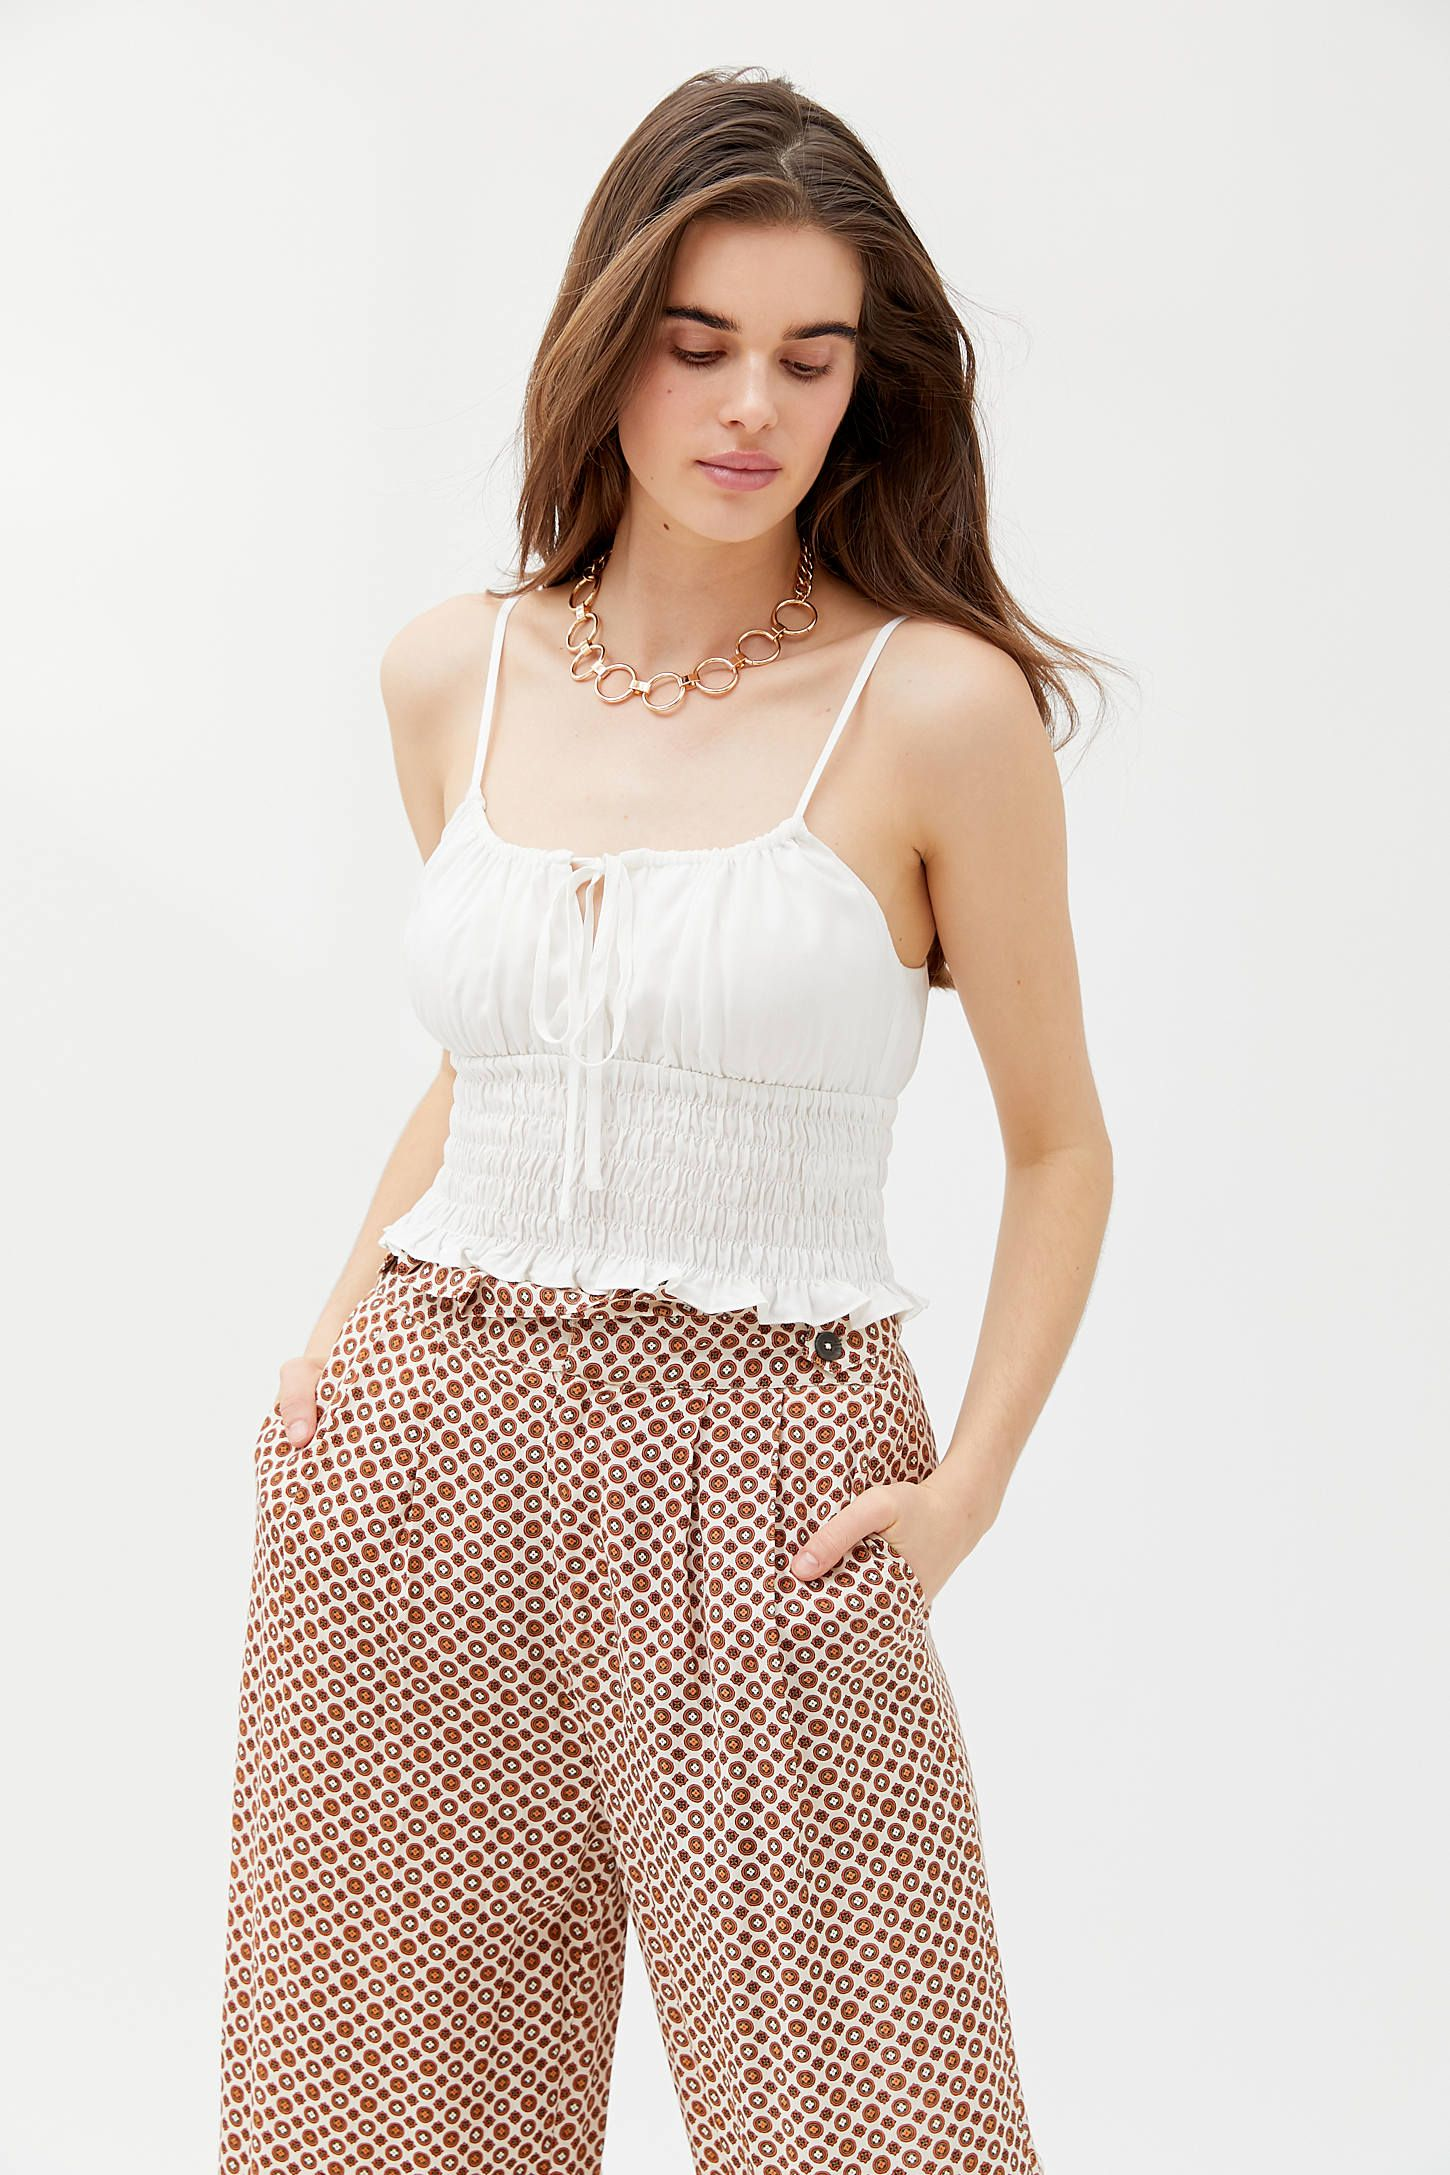 """6 French-Girl Spring Outfits That Are """"Basic"""" But Fashion-Forward 20"""